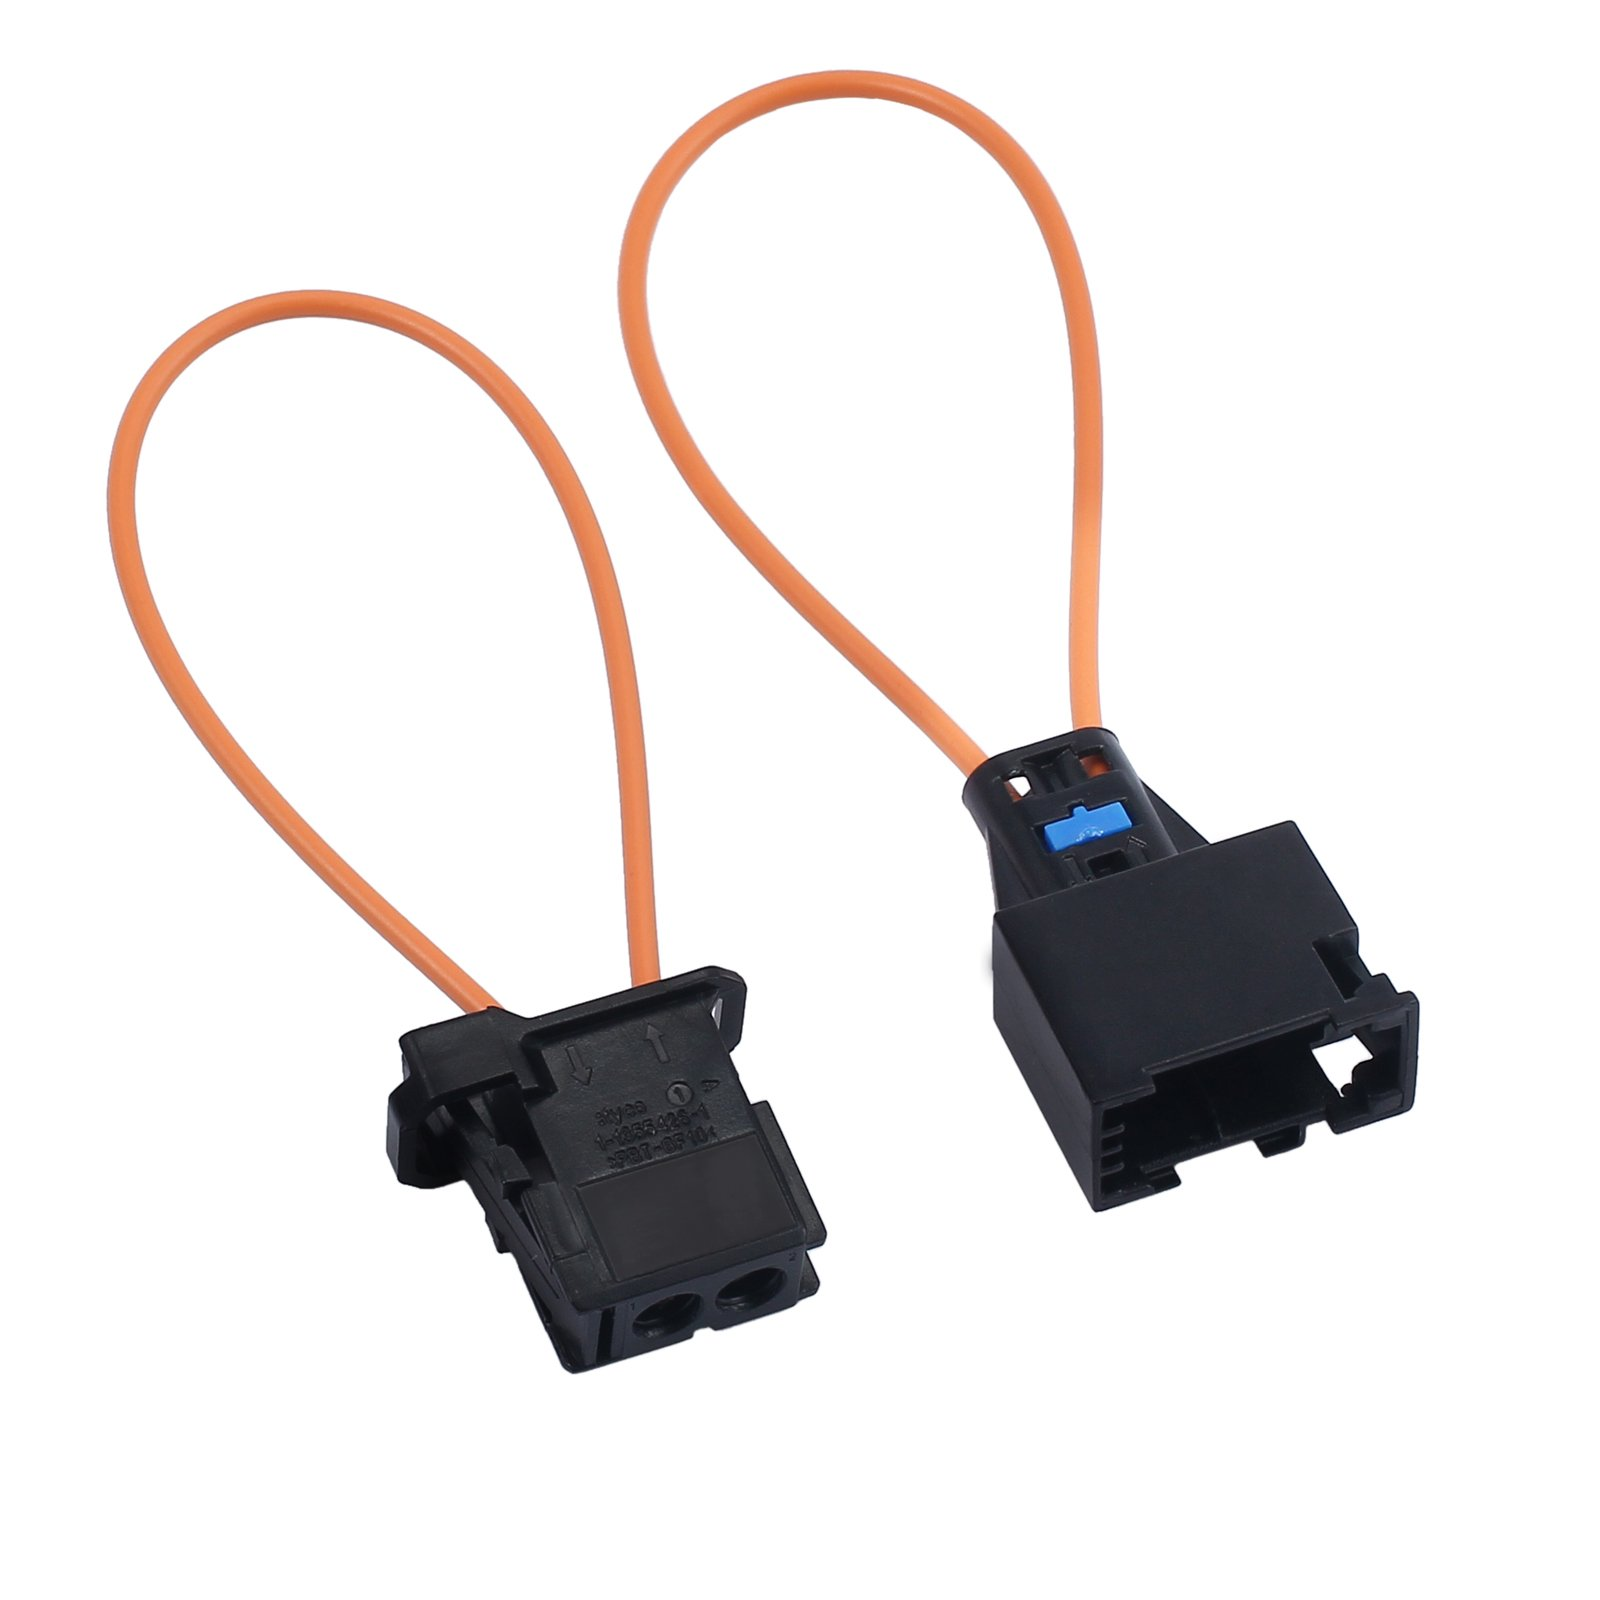 Neoteck Optical Fiber Loop Male to Female Optical Cable Fits for Porsche/VW/BMW/Audi/Mercedes-benz